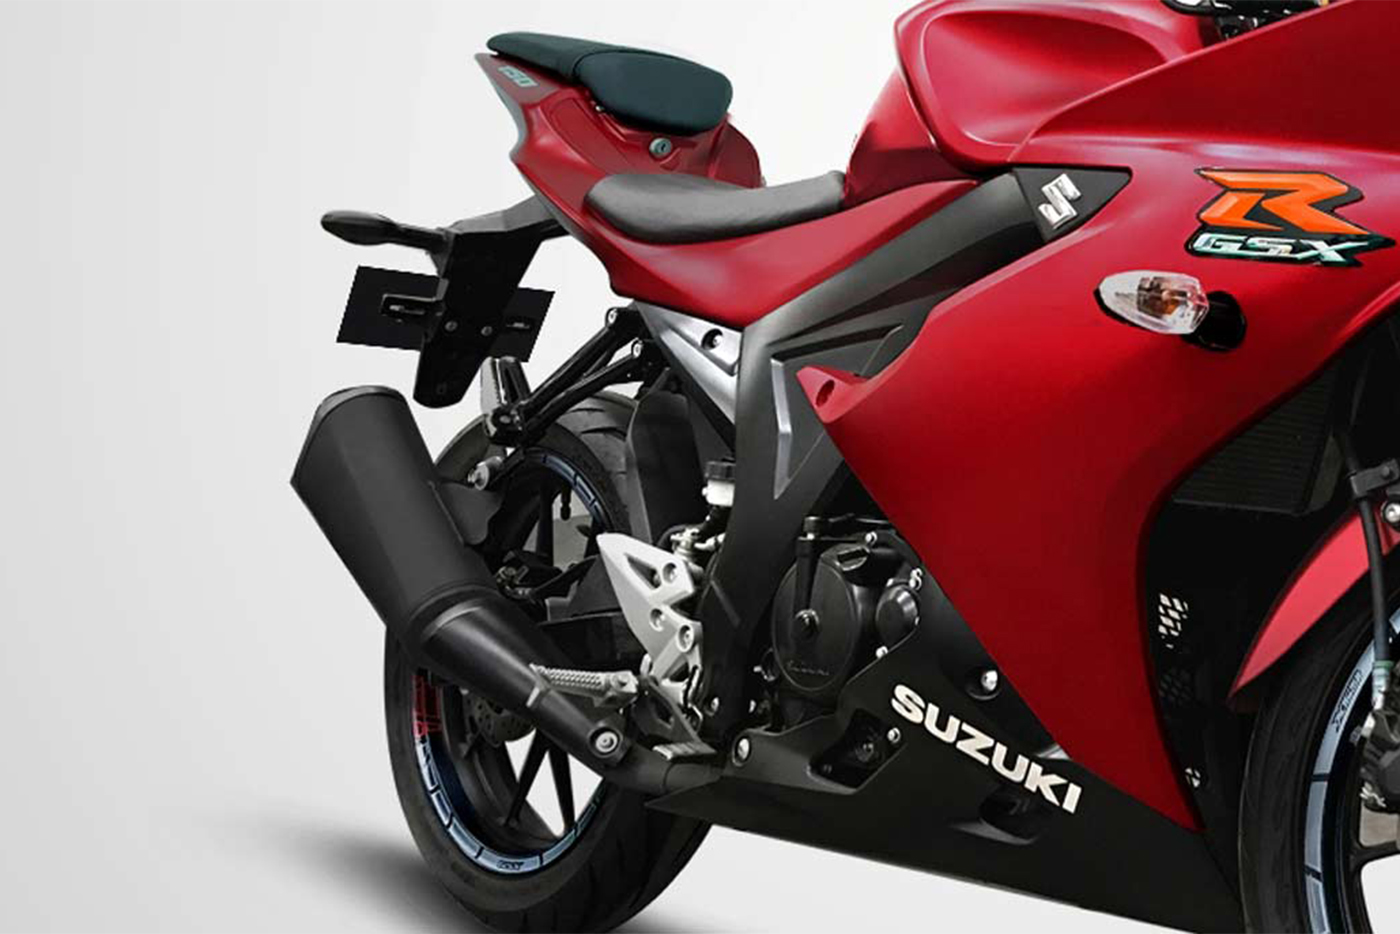 suzuki-gsx-r150-matte-summer-red-4.jpg